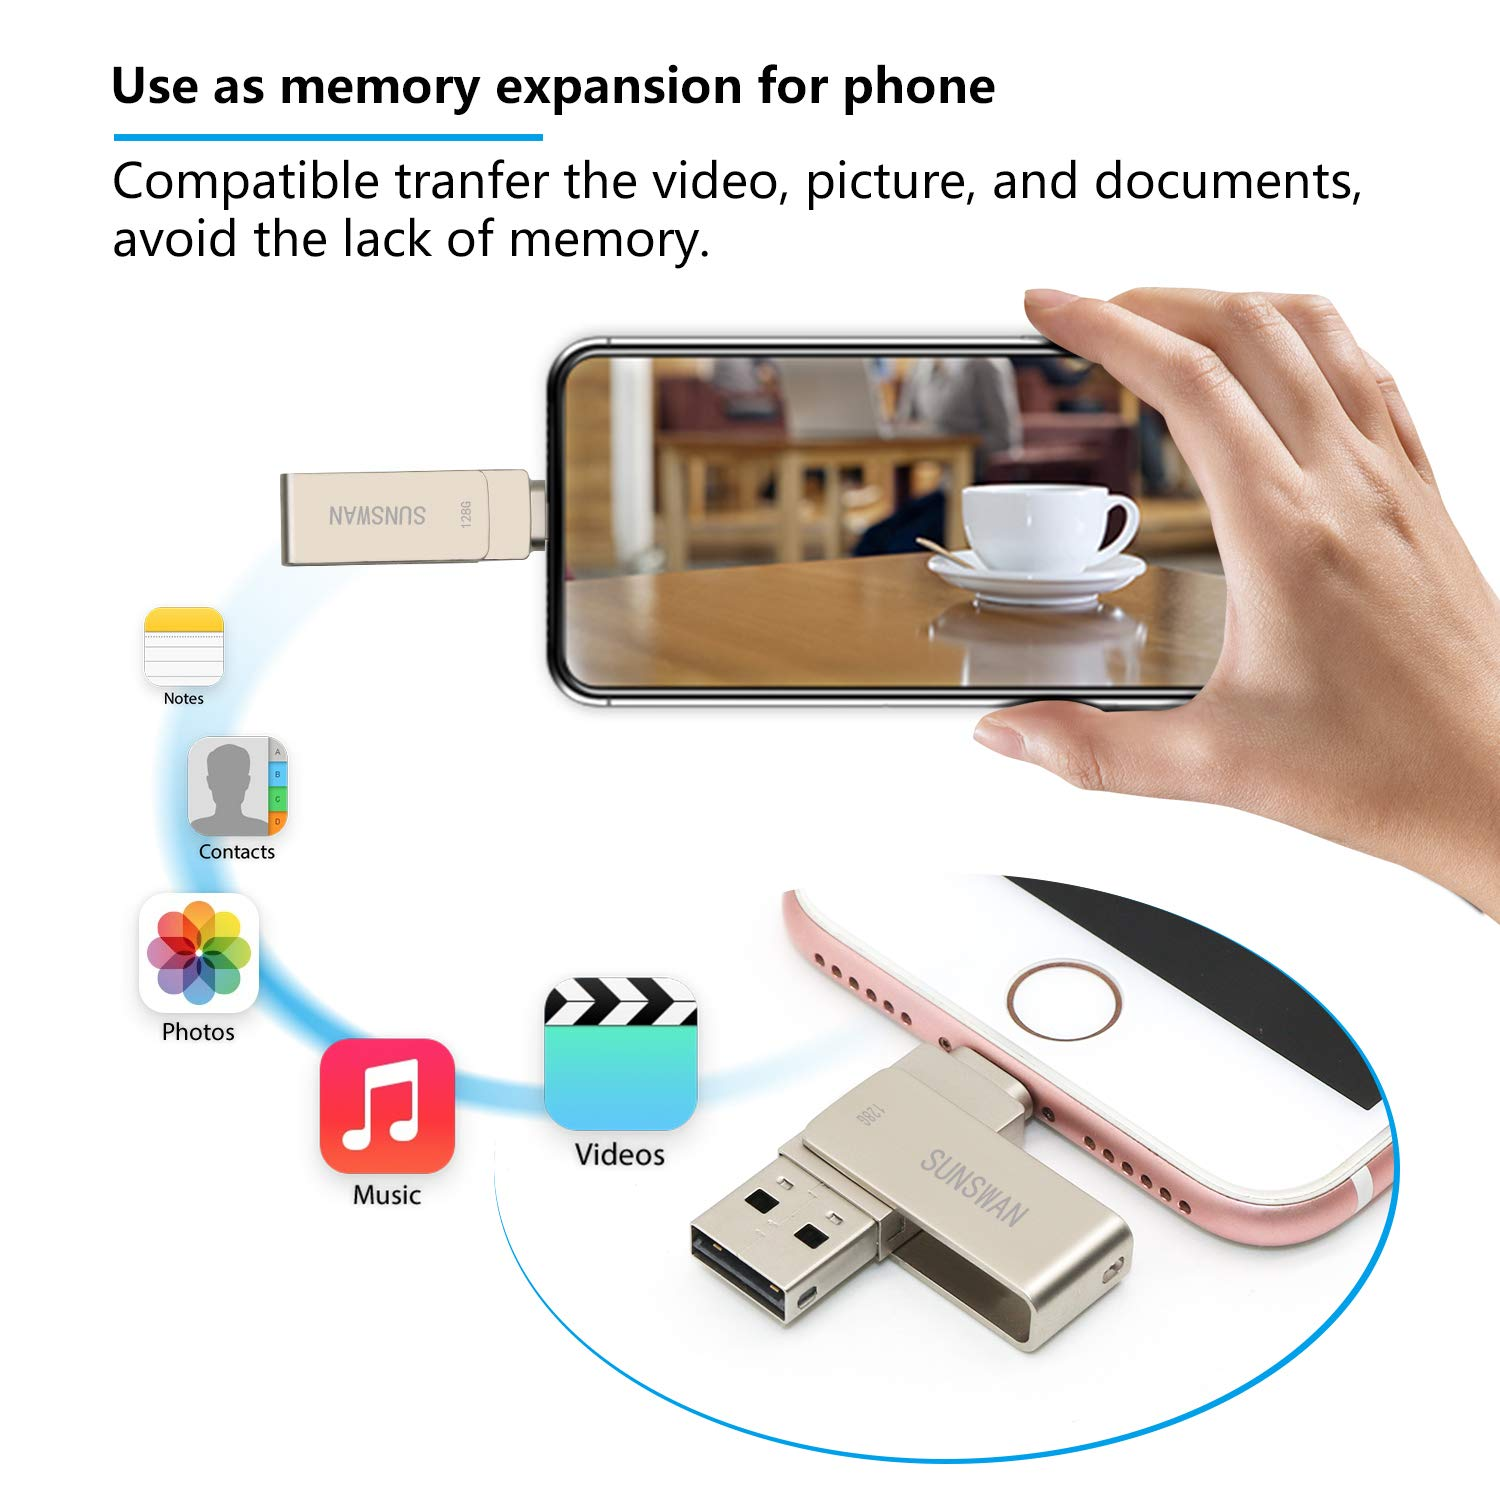 USB Drive 128GB USB Memory Stick iOS Flash Drives for iPhone Photo Stick External Drive Sunswan Compatible iPhone iPad iOS MacBook and Computer (Silver128G-XY) by sunswan (Image #5)